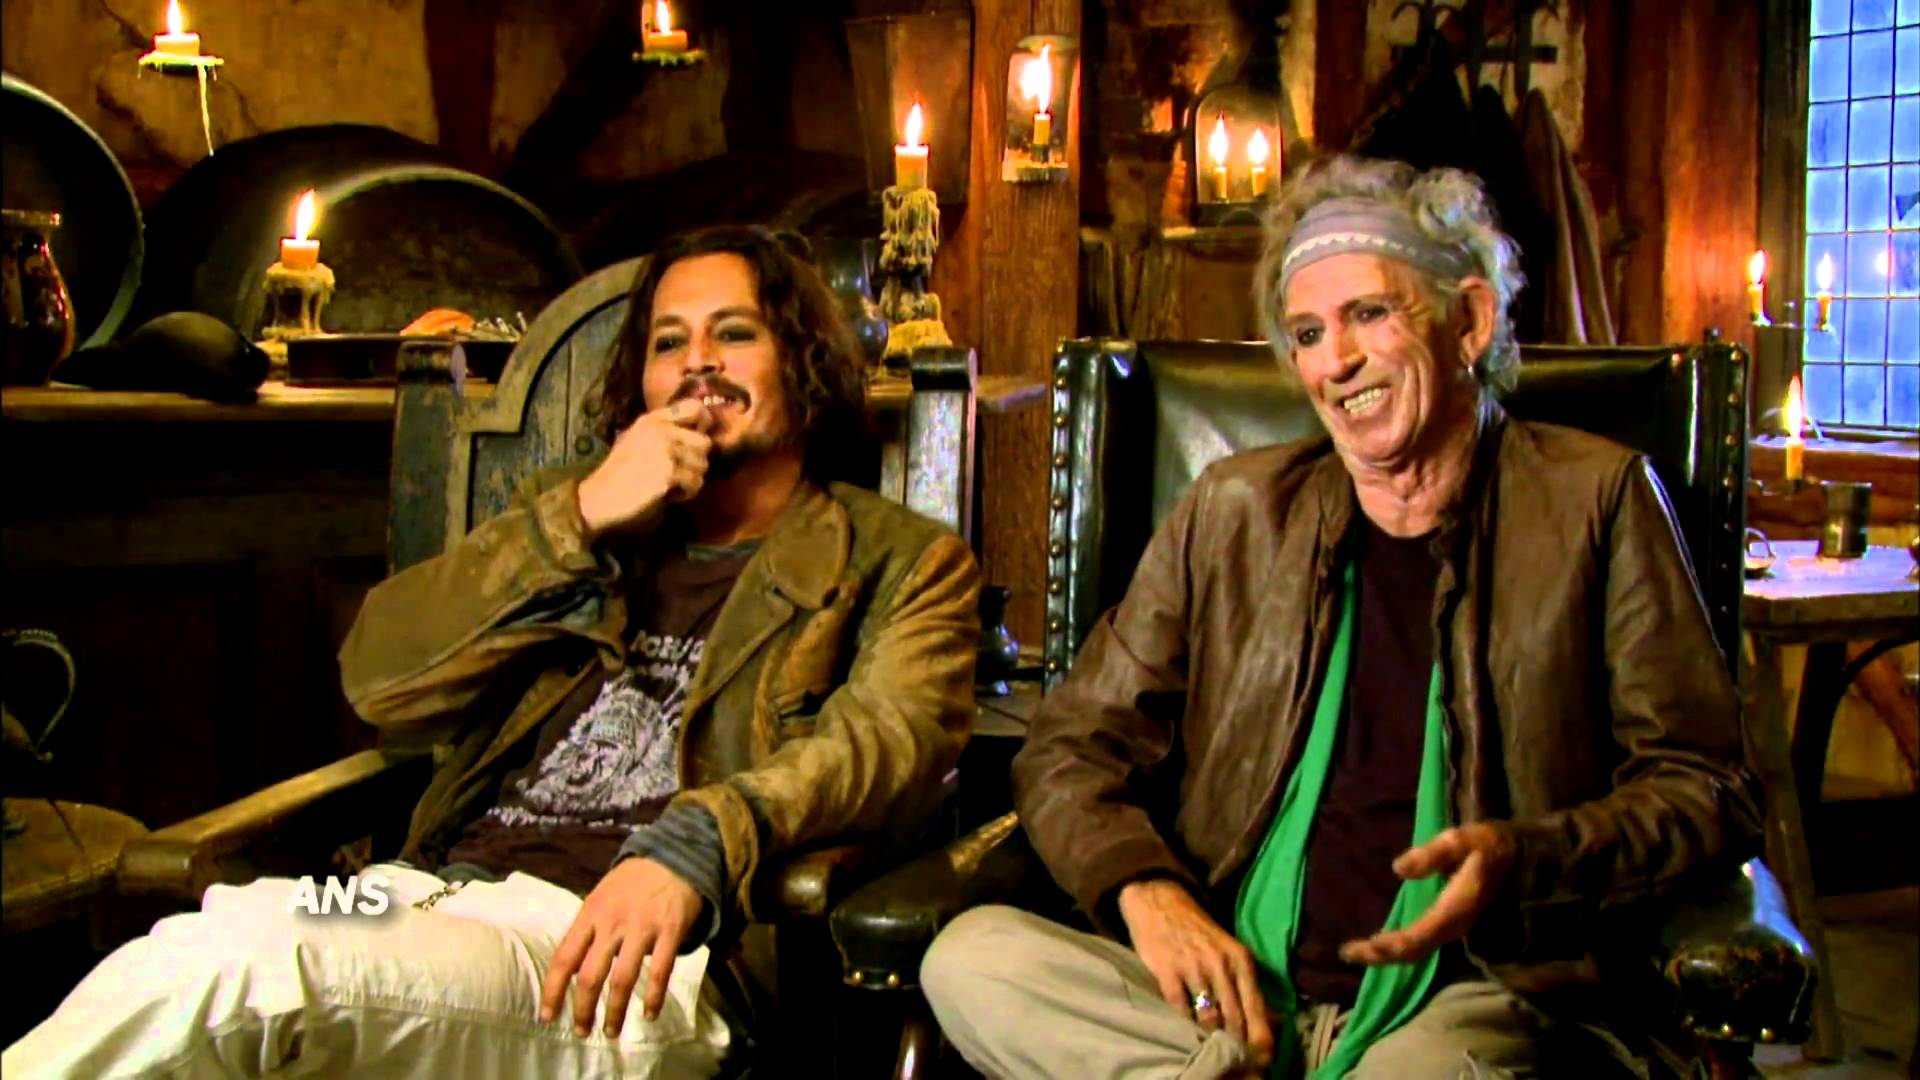 KEITH RICHARDS ACCIDENTALLY SMOKES JOHNNY DEPP